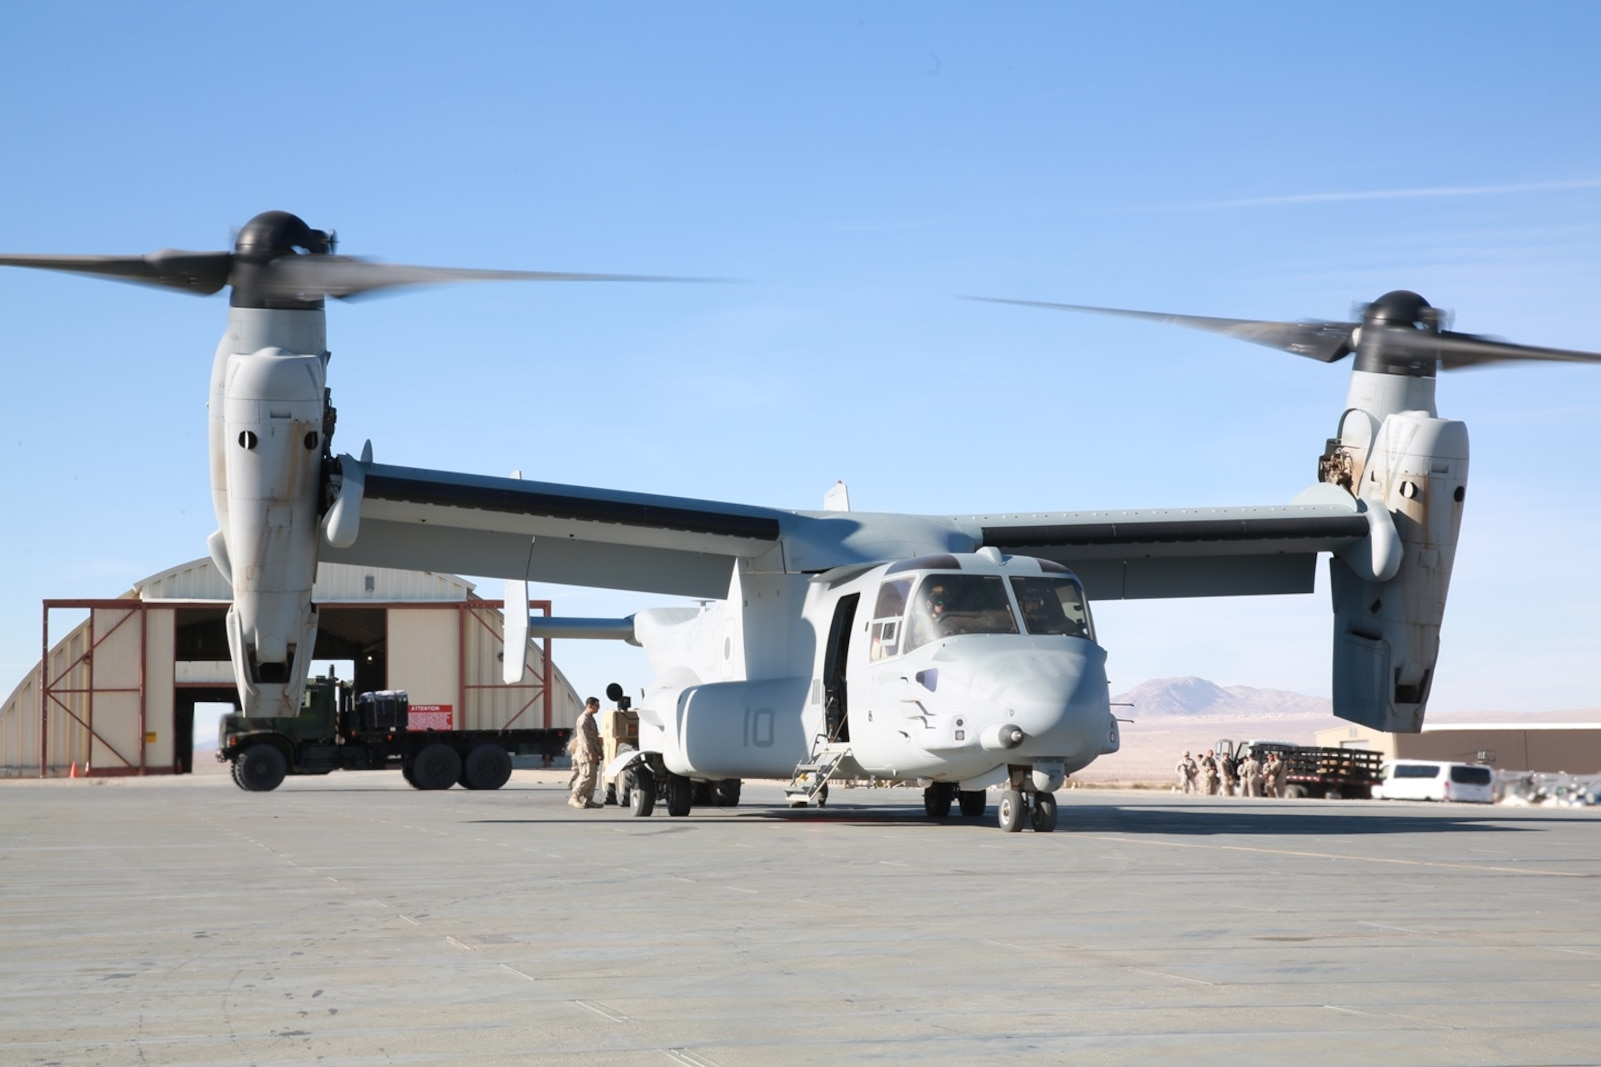 U.S. Marines with Maintenance Management Team, 1st Supply Battalion, 1st Marine Logistics Group, unload a MV-22B Osprey with supplies for Marines participating in exercise Steel Knight at the Strategic Expeditionary Landing Field, Marine Corps Air Ground Combat Center Twentynine Palms, Calif., Dec. 8, 2016. Steel Knight 2017 is a 1st Marine Division-led exercise that exposes Marines and Sailors to skill sets necessary to operate as a fully capable Marine air ground task force. (U.S. Marine Corps photo by PFC Timothy Shoemaker)